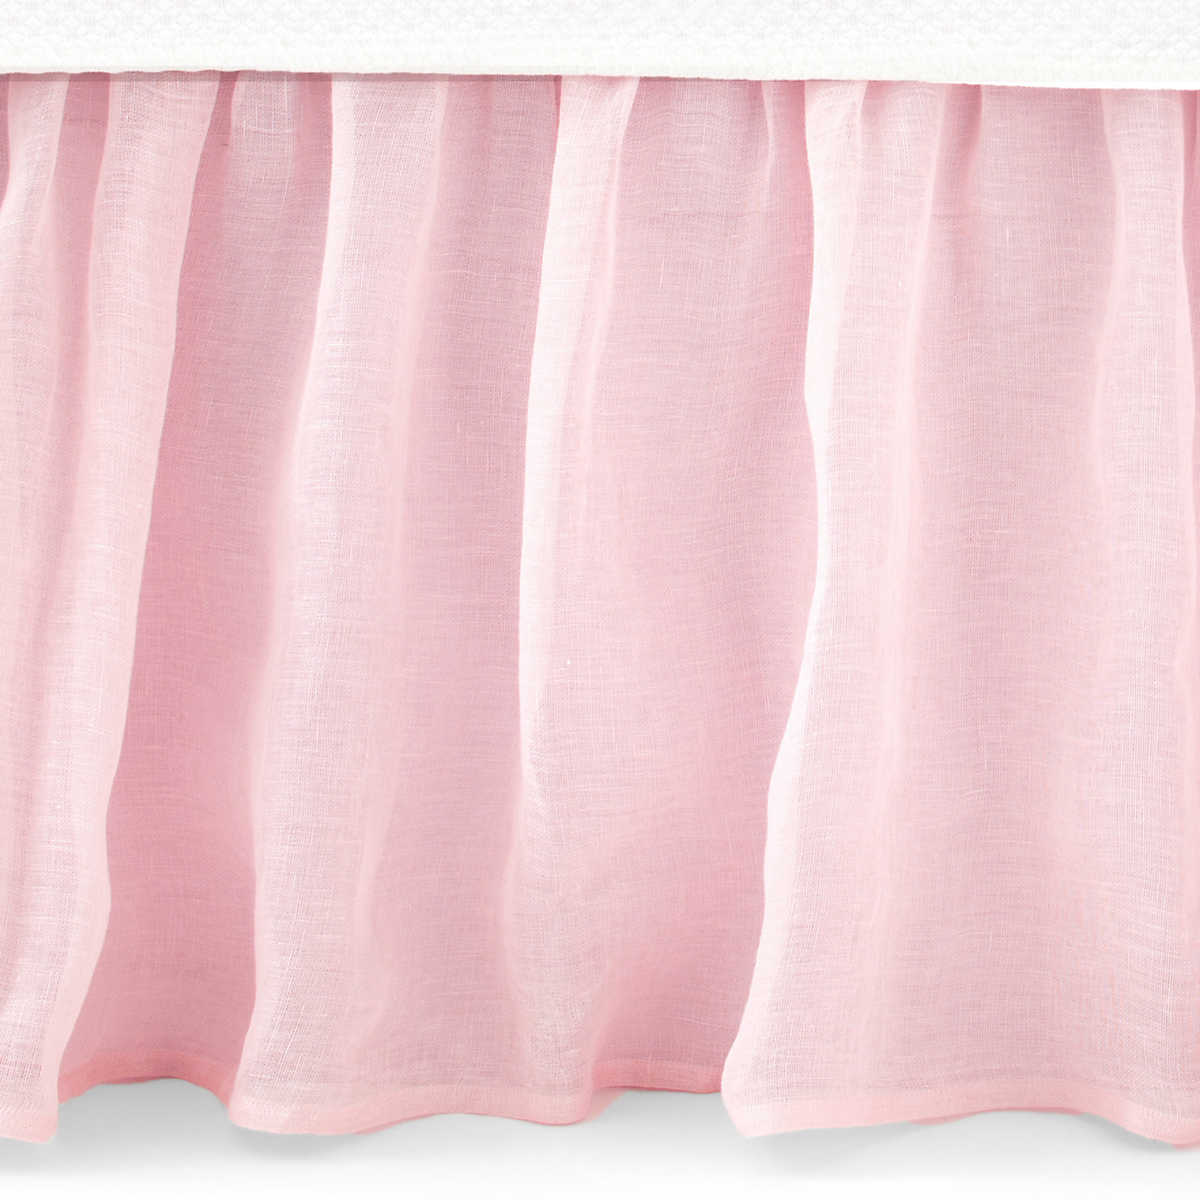 Savannah Linen Gauze Blush Bed Skirt Pine Cone Hill